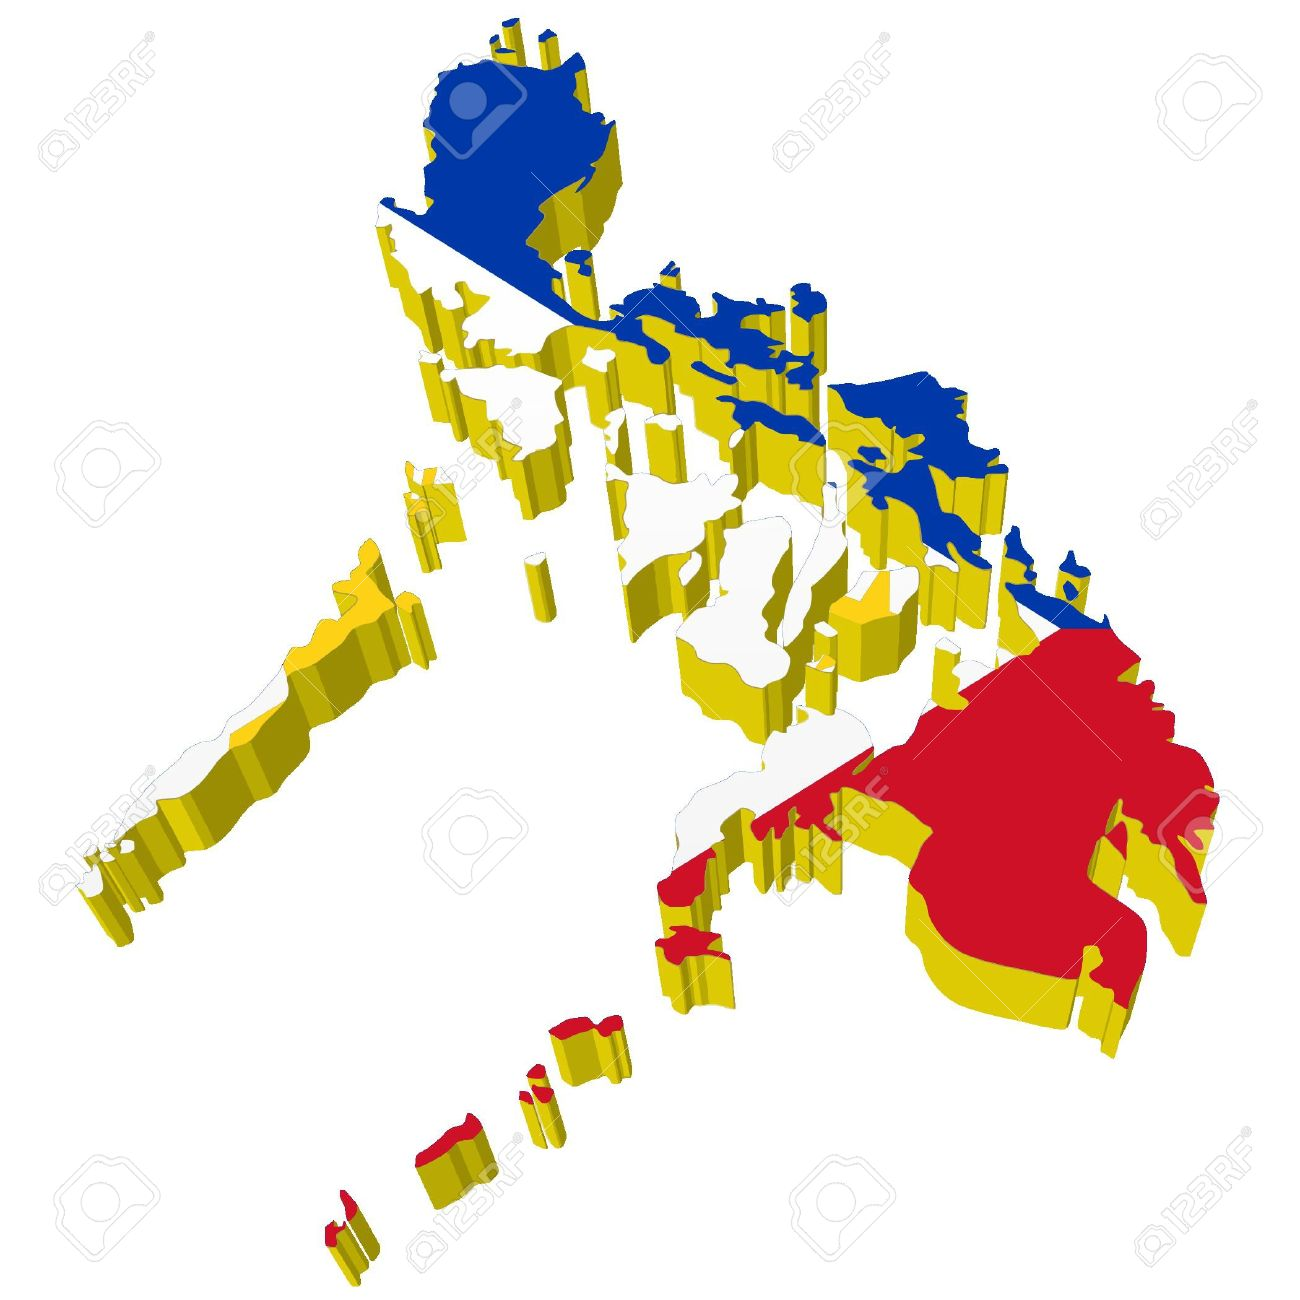 Map Of The Philippines 3D Vectors 3D Map Of Philippines Royalty Free Cliparts, Vectors, And